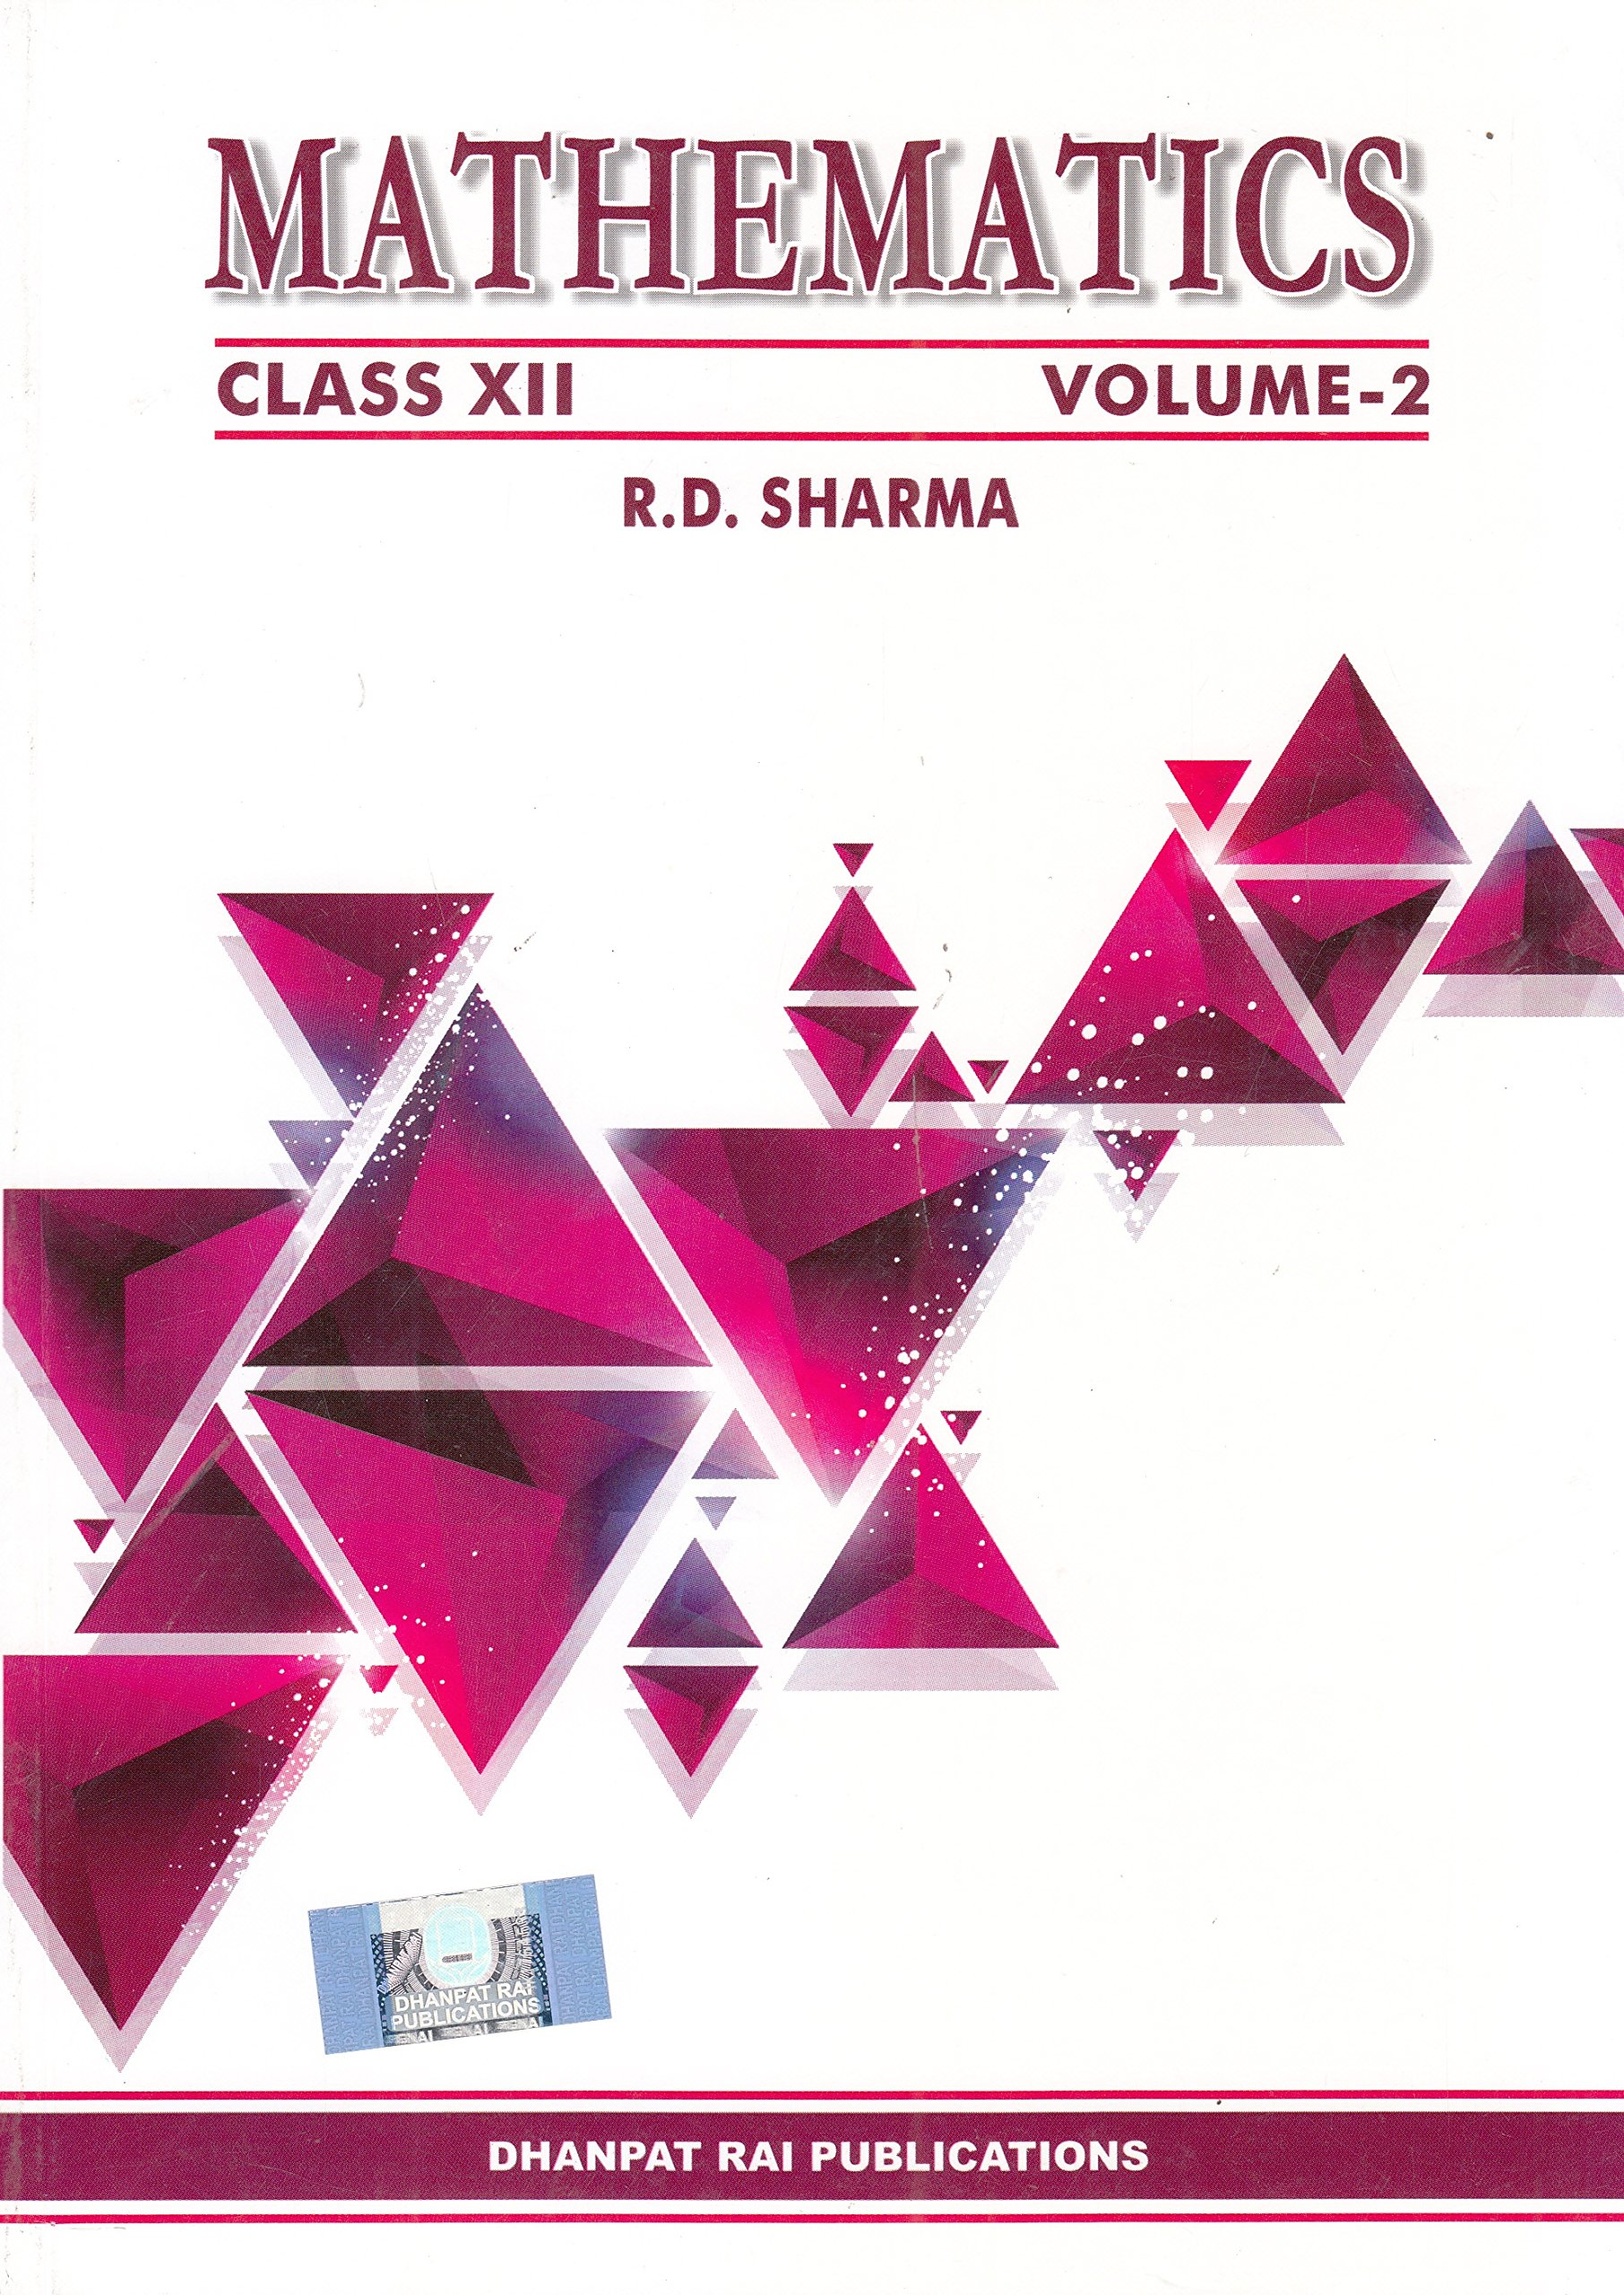 Poster design class 12 - Buy Mathematics Vol 1 2 Class 12 Book Online At Low Prices In India Mathematics Vol 1 2 Class 12 Reviews Ratings Amazon In